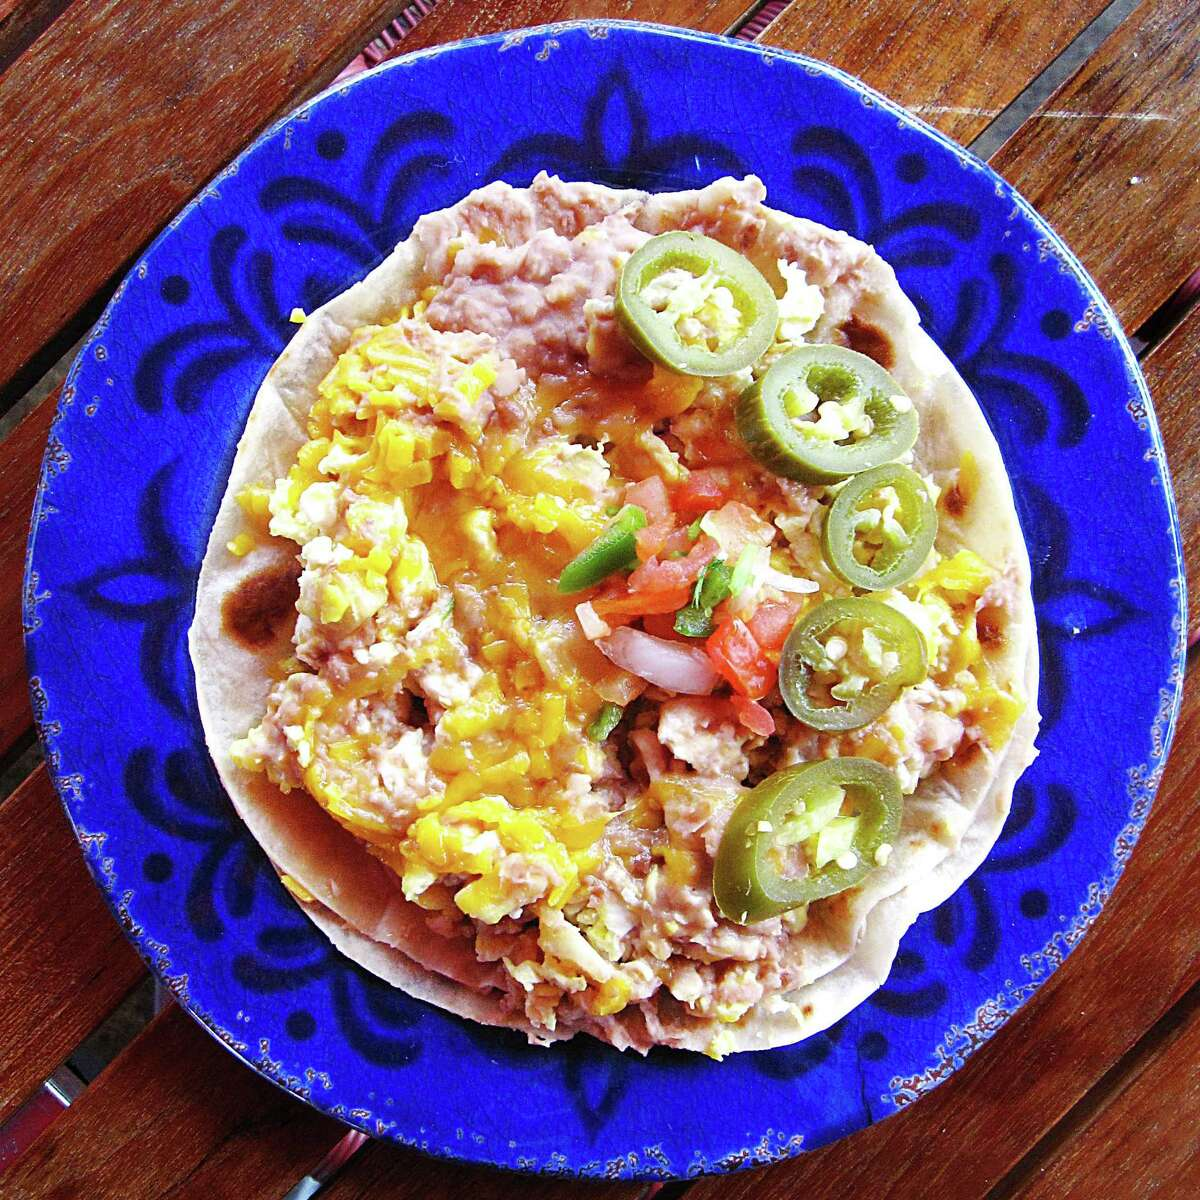 Breakfast pirata taco with eggs, beans, potatoes and cheese on two flour tortillas from Taco Palenque.